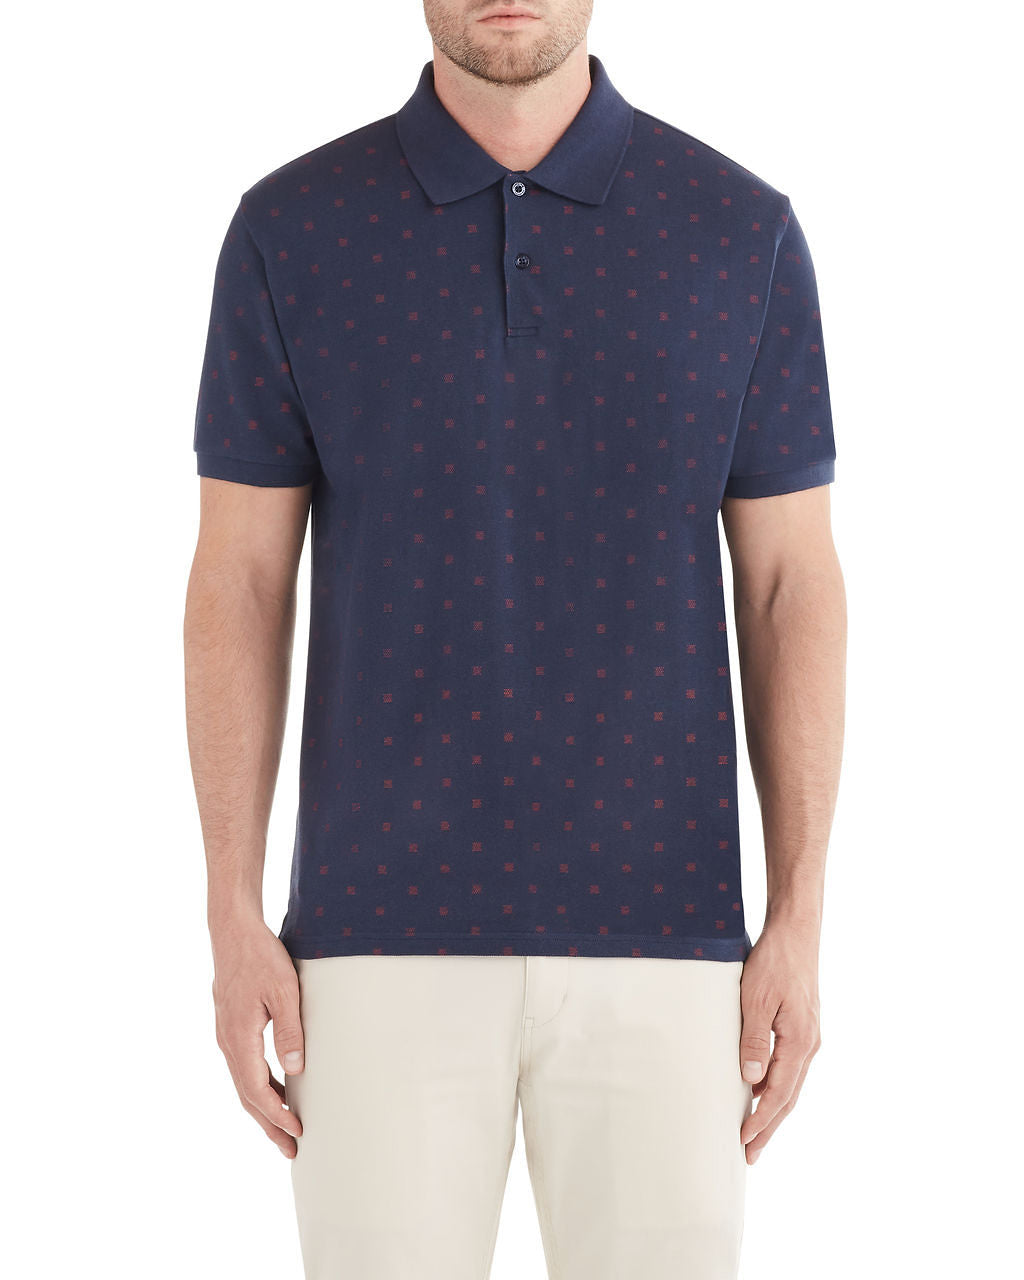 Spot Squares Print Polo Shirt - Dark Navy